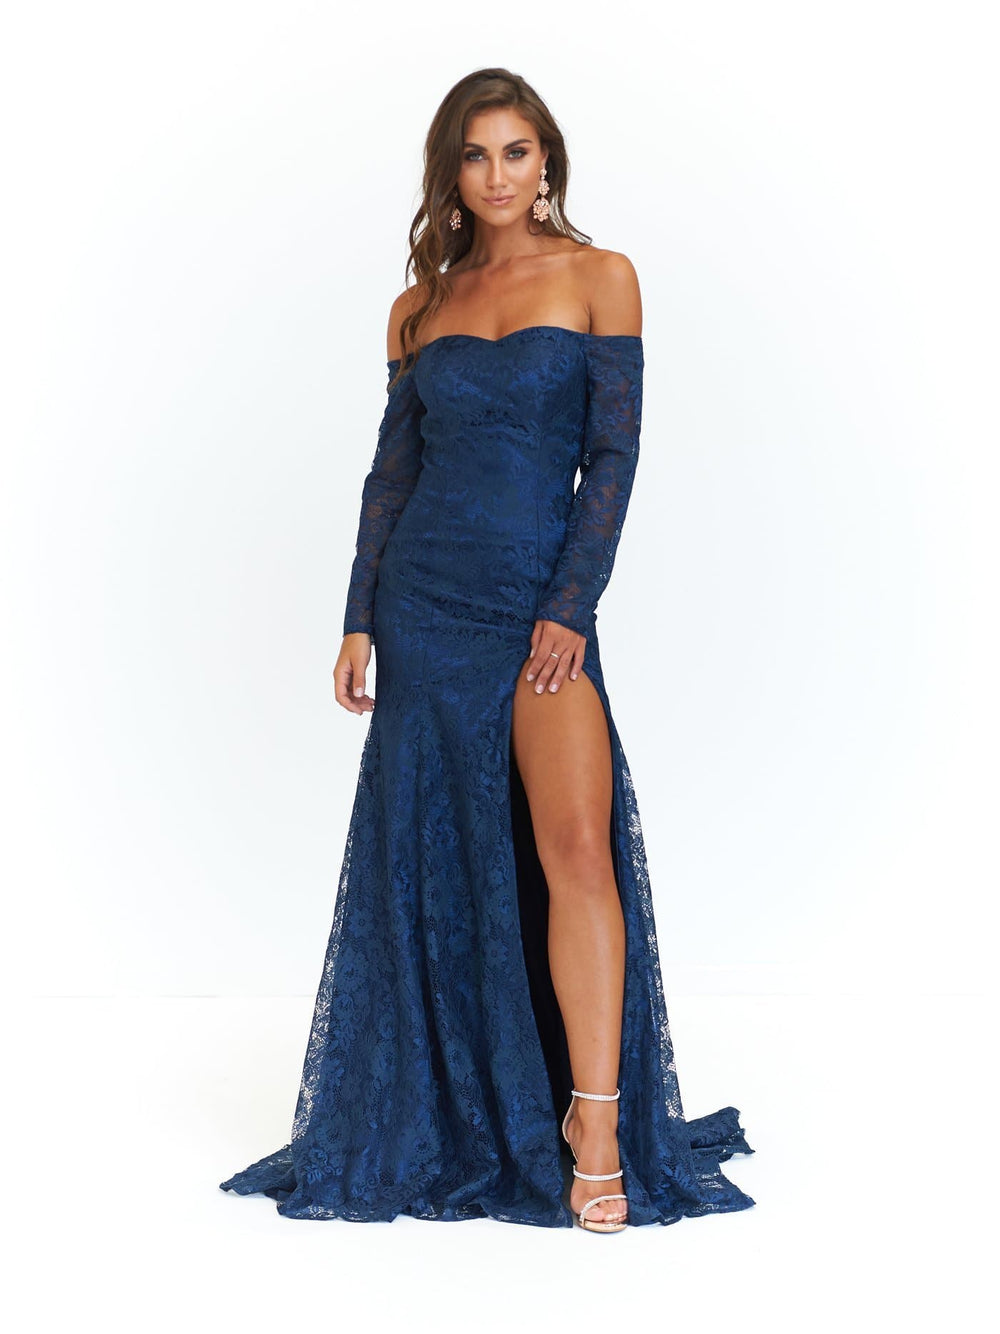 A N Duaa - Navy Off-Shoulder Lace Gown with Long Sleeves – A N Luxe ... f808142ab0a7